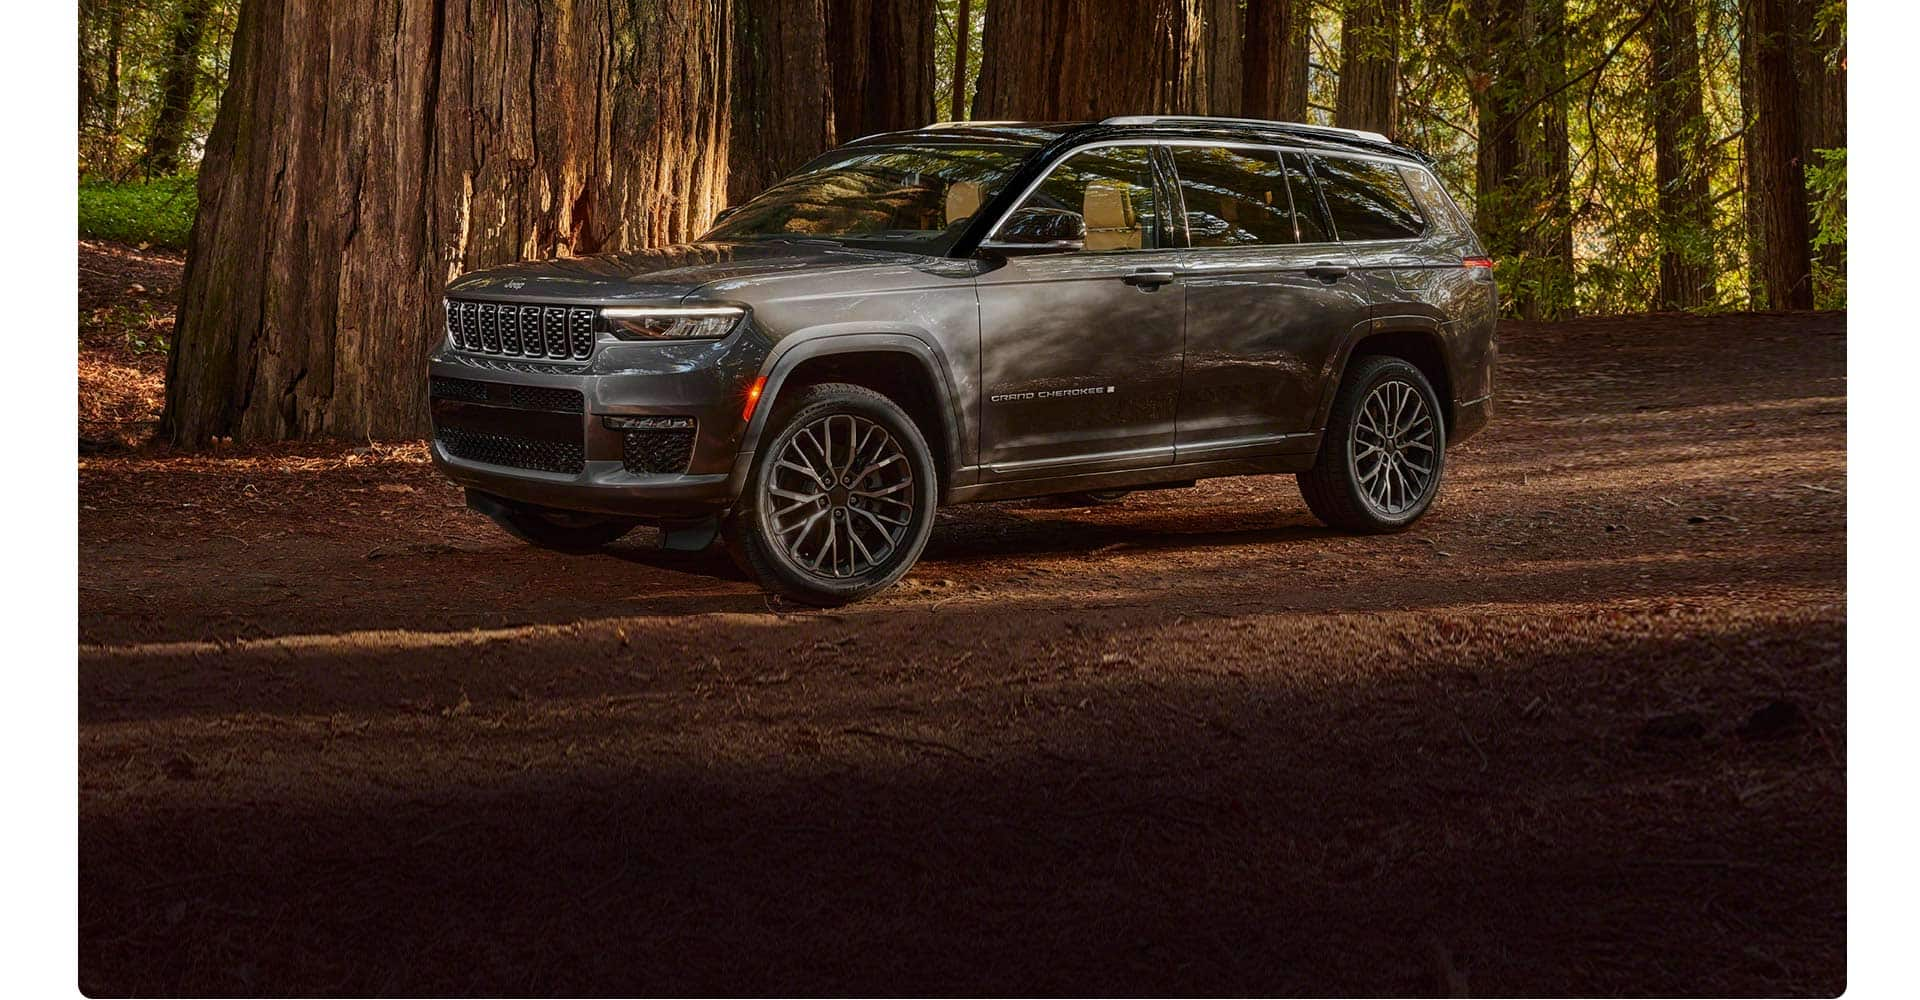 A side profile view of the 2021 Jeep Grand Cherokee L Summit parked on a trail in the forest.